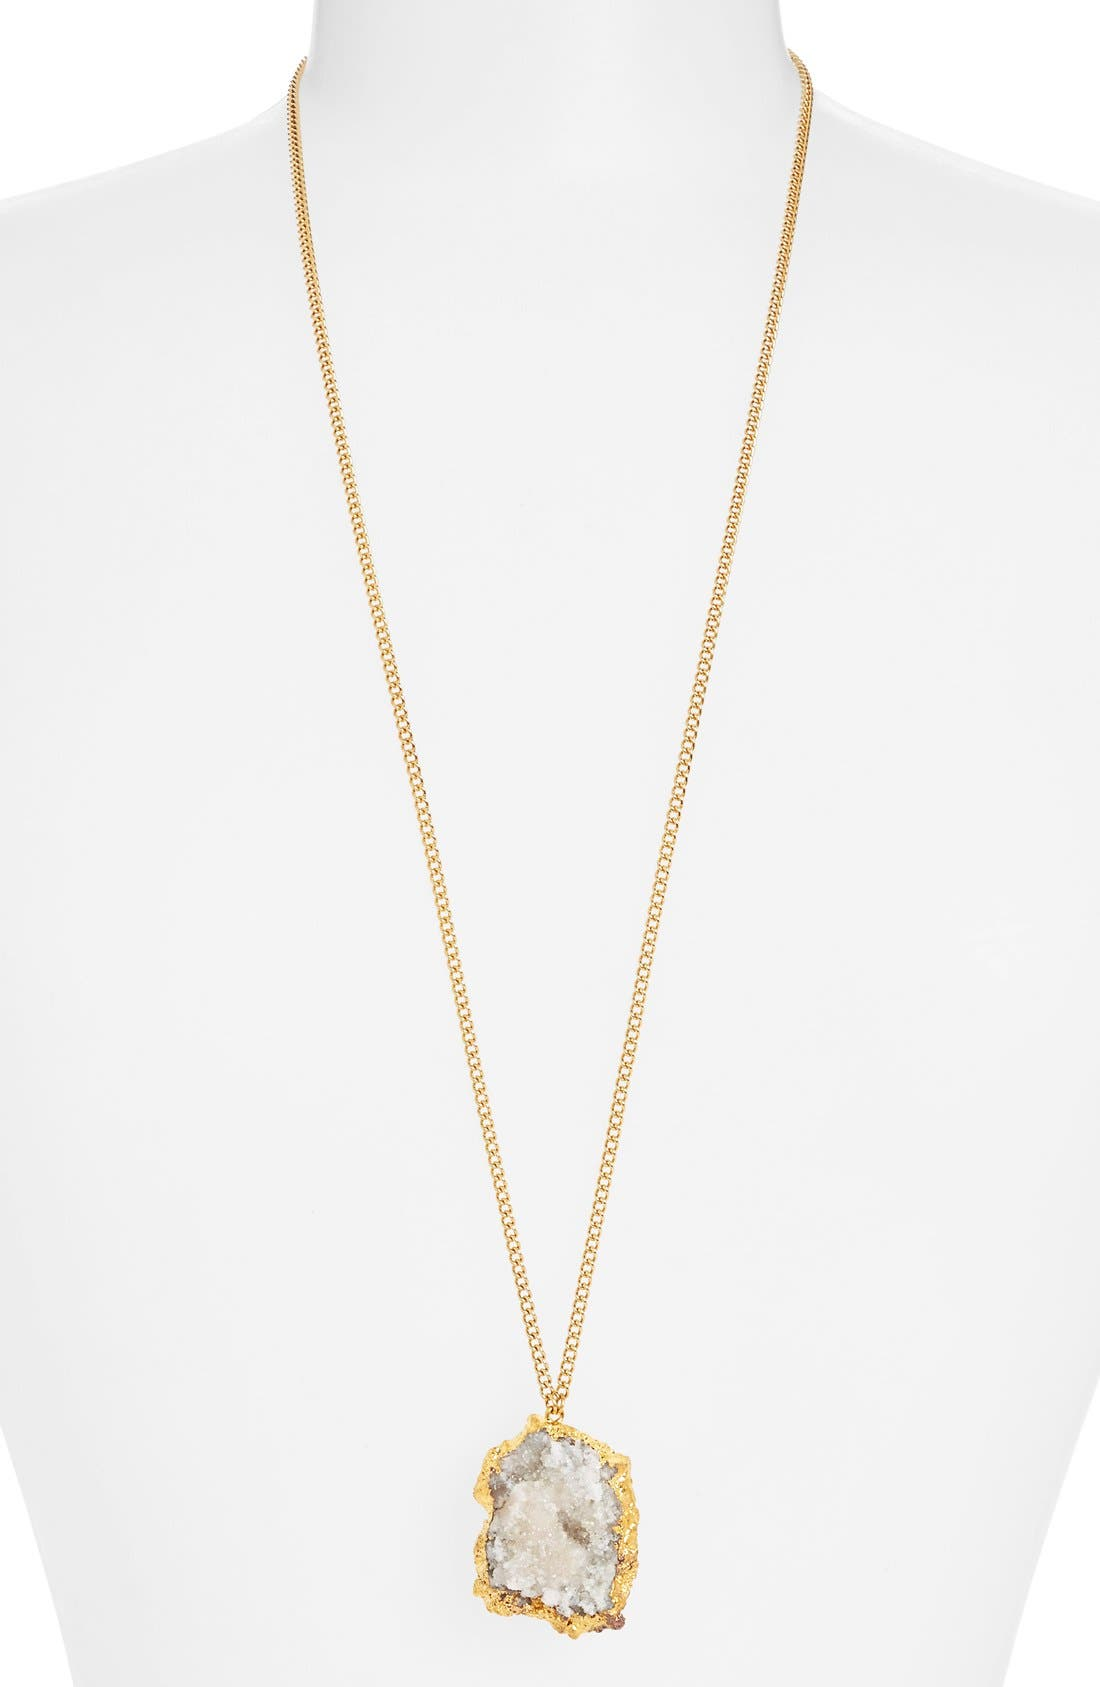 Alternate Image 1 Selected - Nordstrom 'Sorcerer's Stone' Long Drusy Pendant Necklace